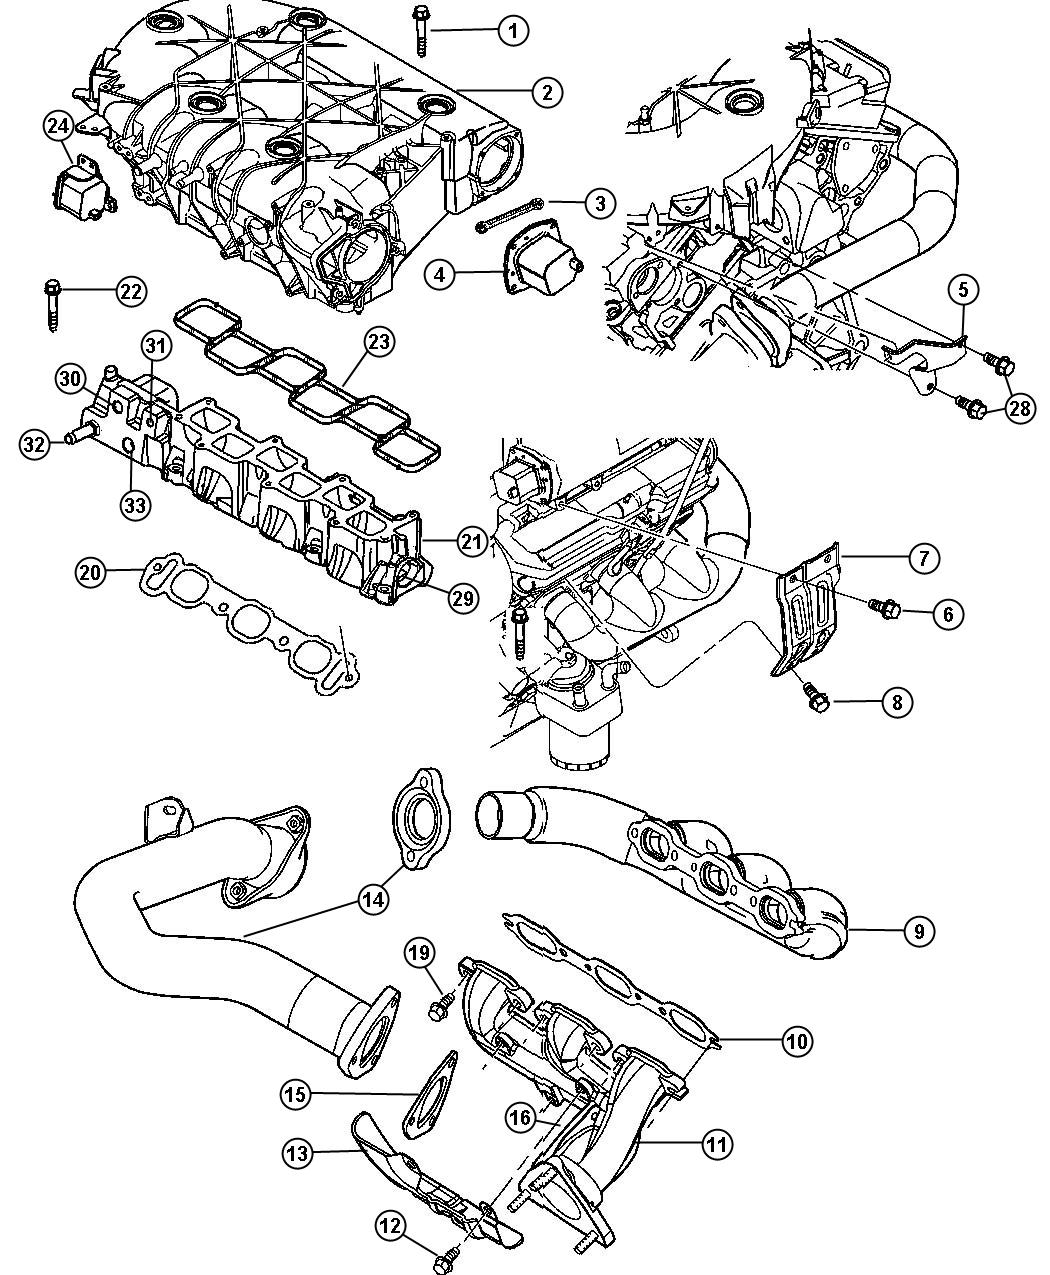 2004 Chrysler Pacifica Manifold, Intake and Exhaust 3.5L